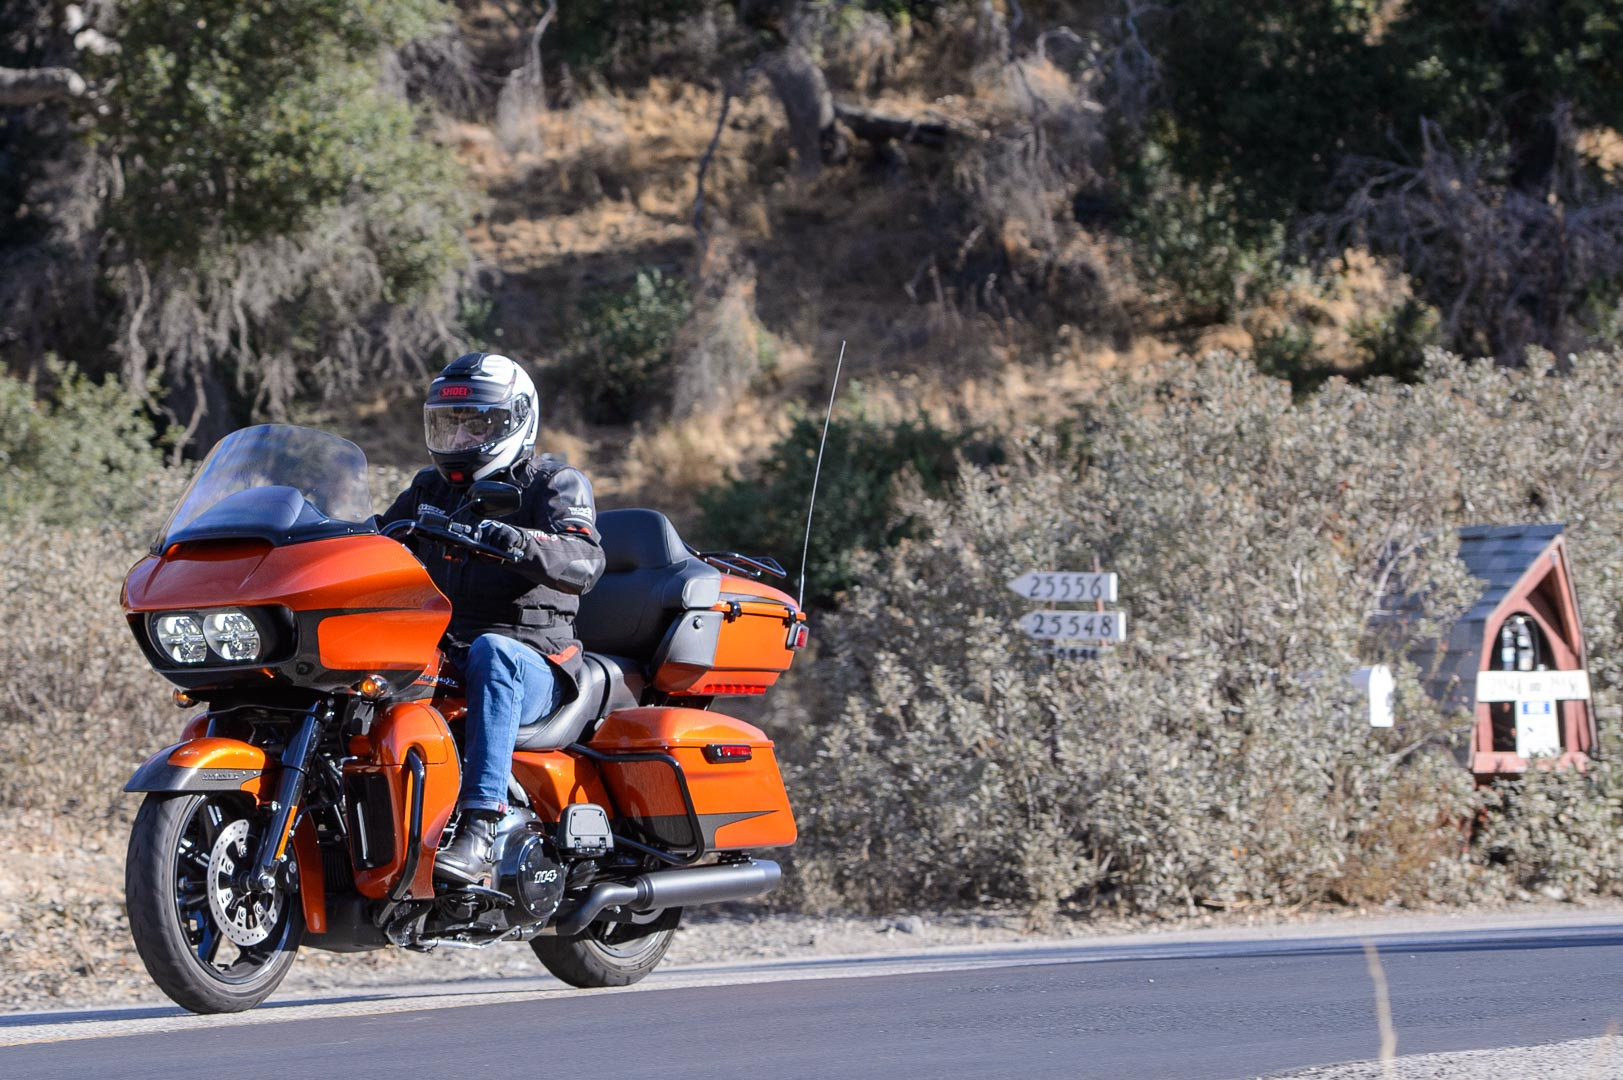 2020 Harley-Davidson Road Glide Limited: With RDRS